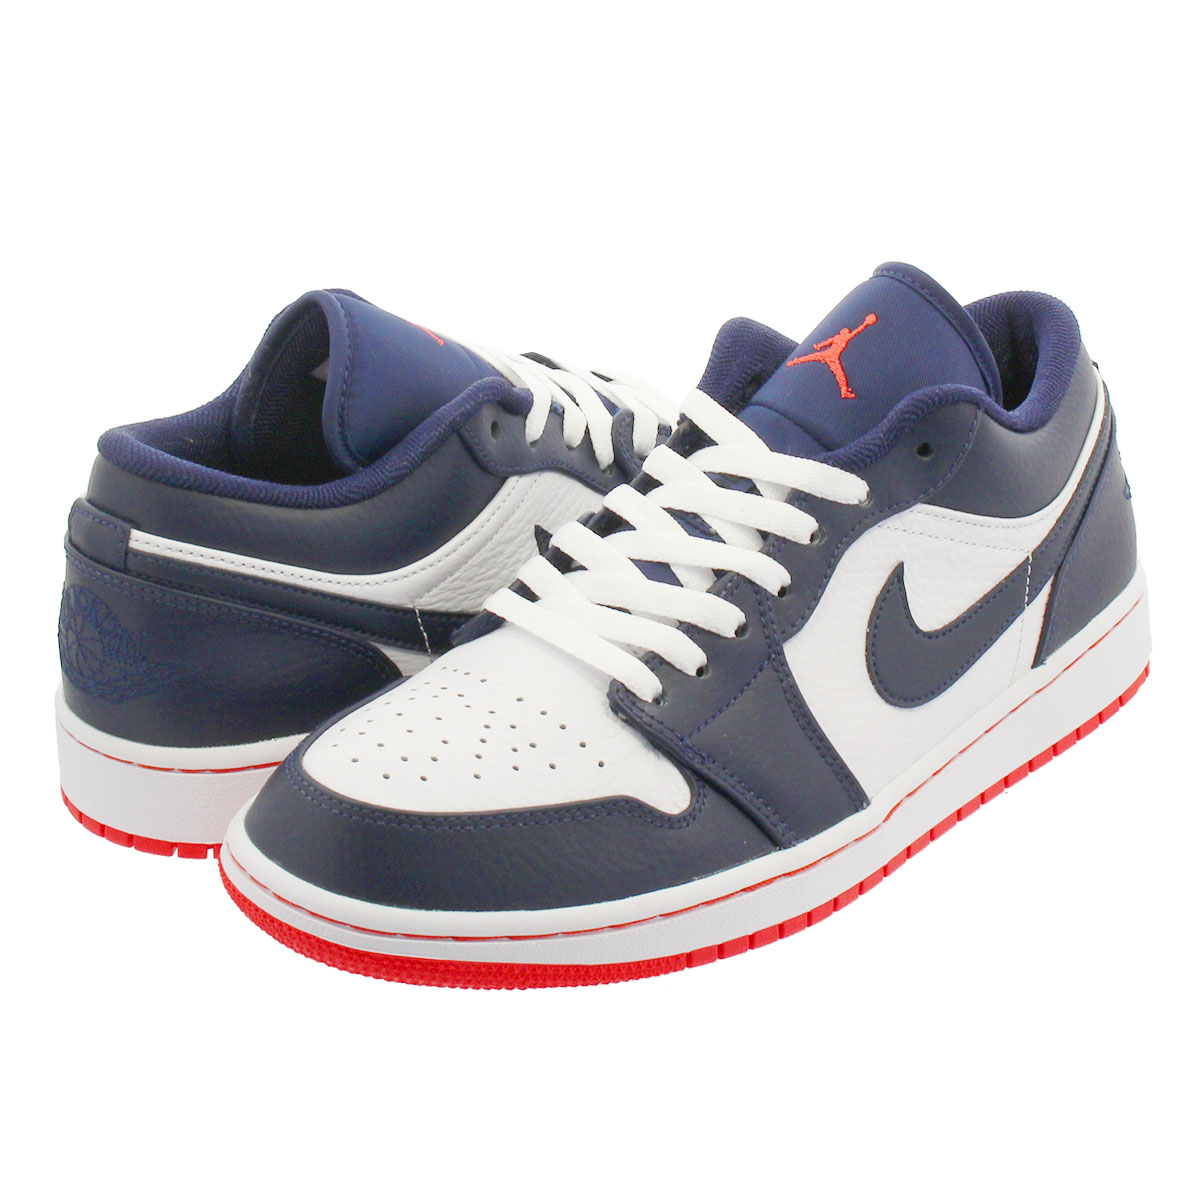 really cheap reputable site elegant shoes NIKE AIR JORDAN 1 LOW Nike Air Jordan 1 nostalgic low OBSIDIAN/EMBER  GLOW/WHITE 553,558-481